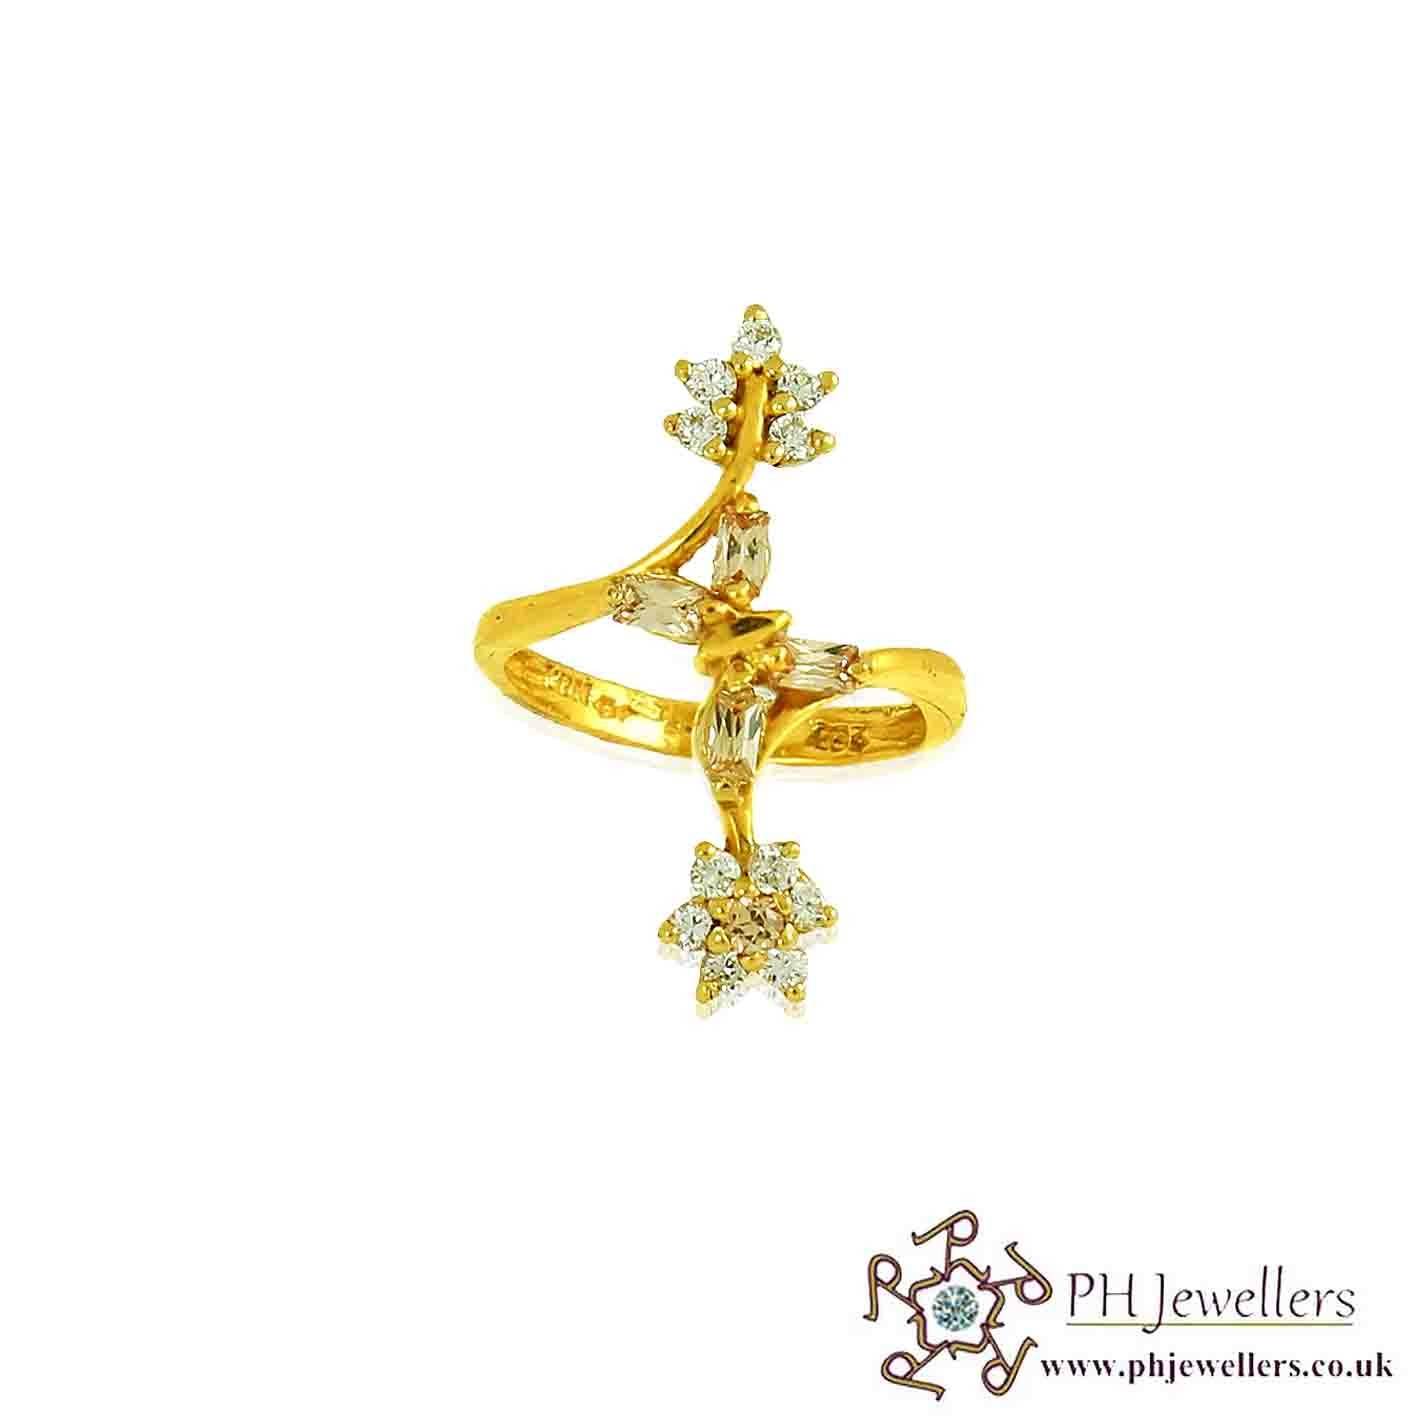 22ct 916 Hallmark Yellow Gold Long Flower Size M,N Ring CZ FR20